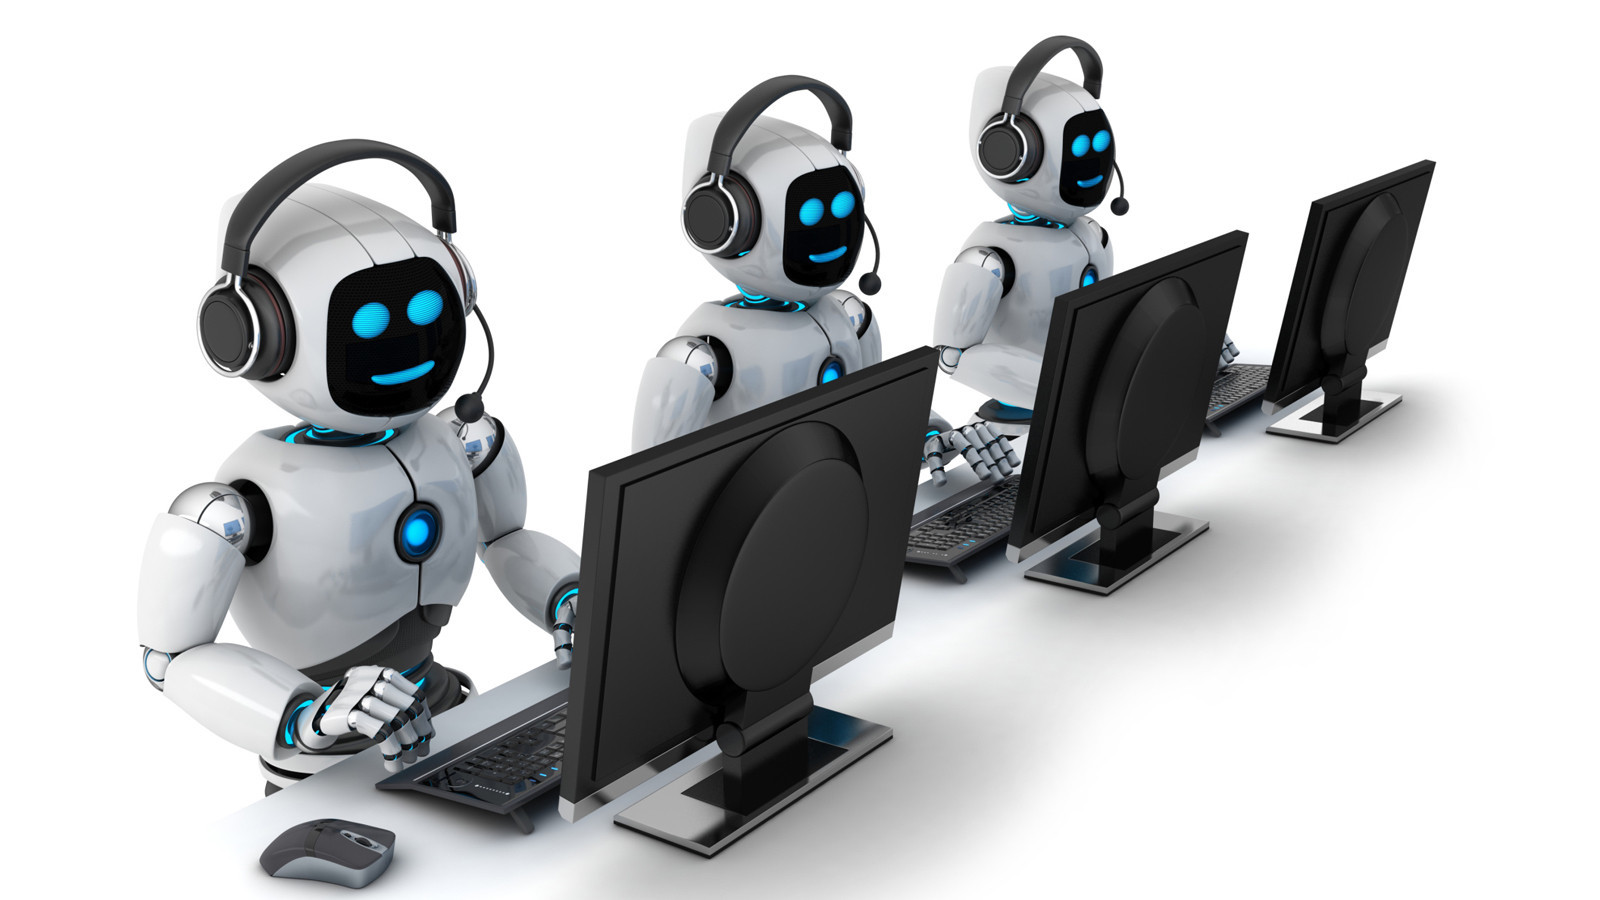 Photo of three humanoid robots sitting in front of computer screens